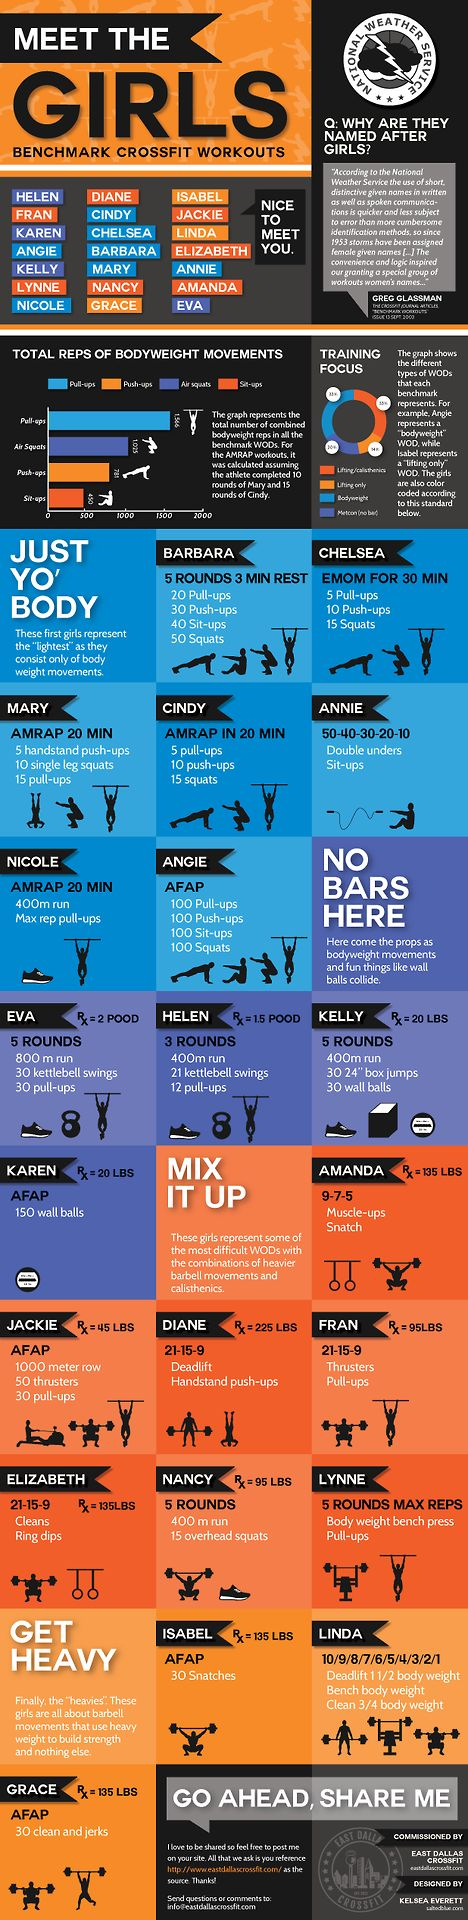 CrossFit Chicks: Courtesy of East Dallas Crossfit